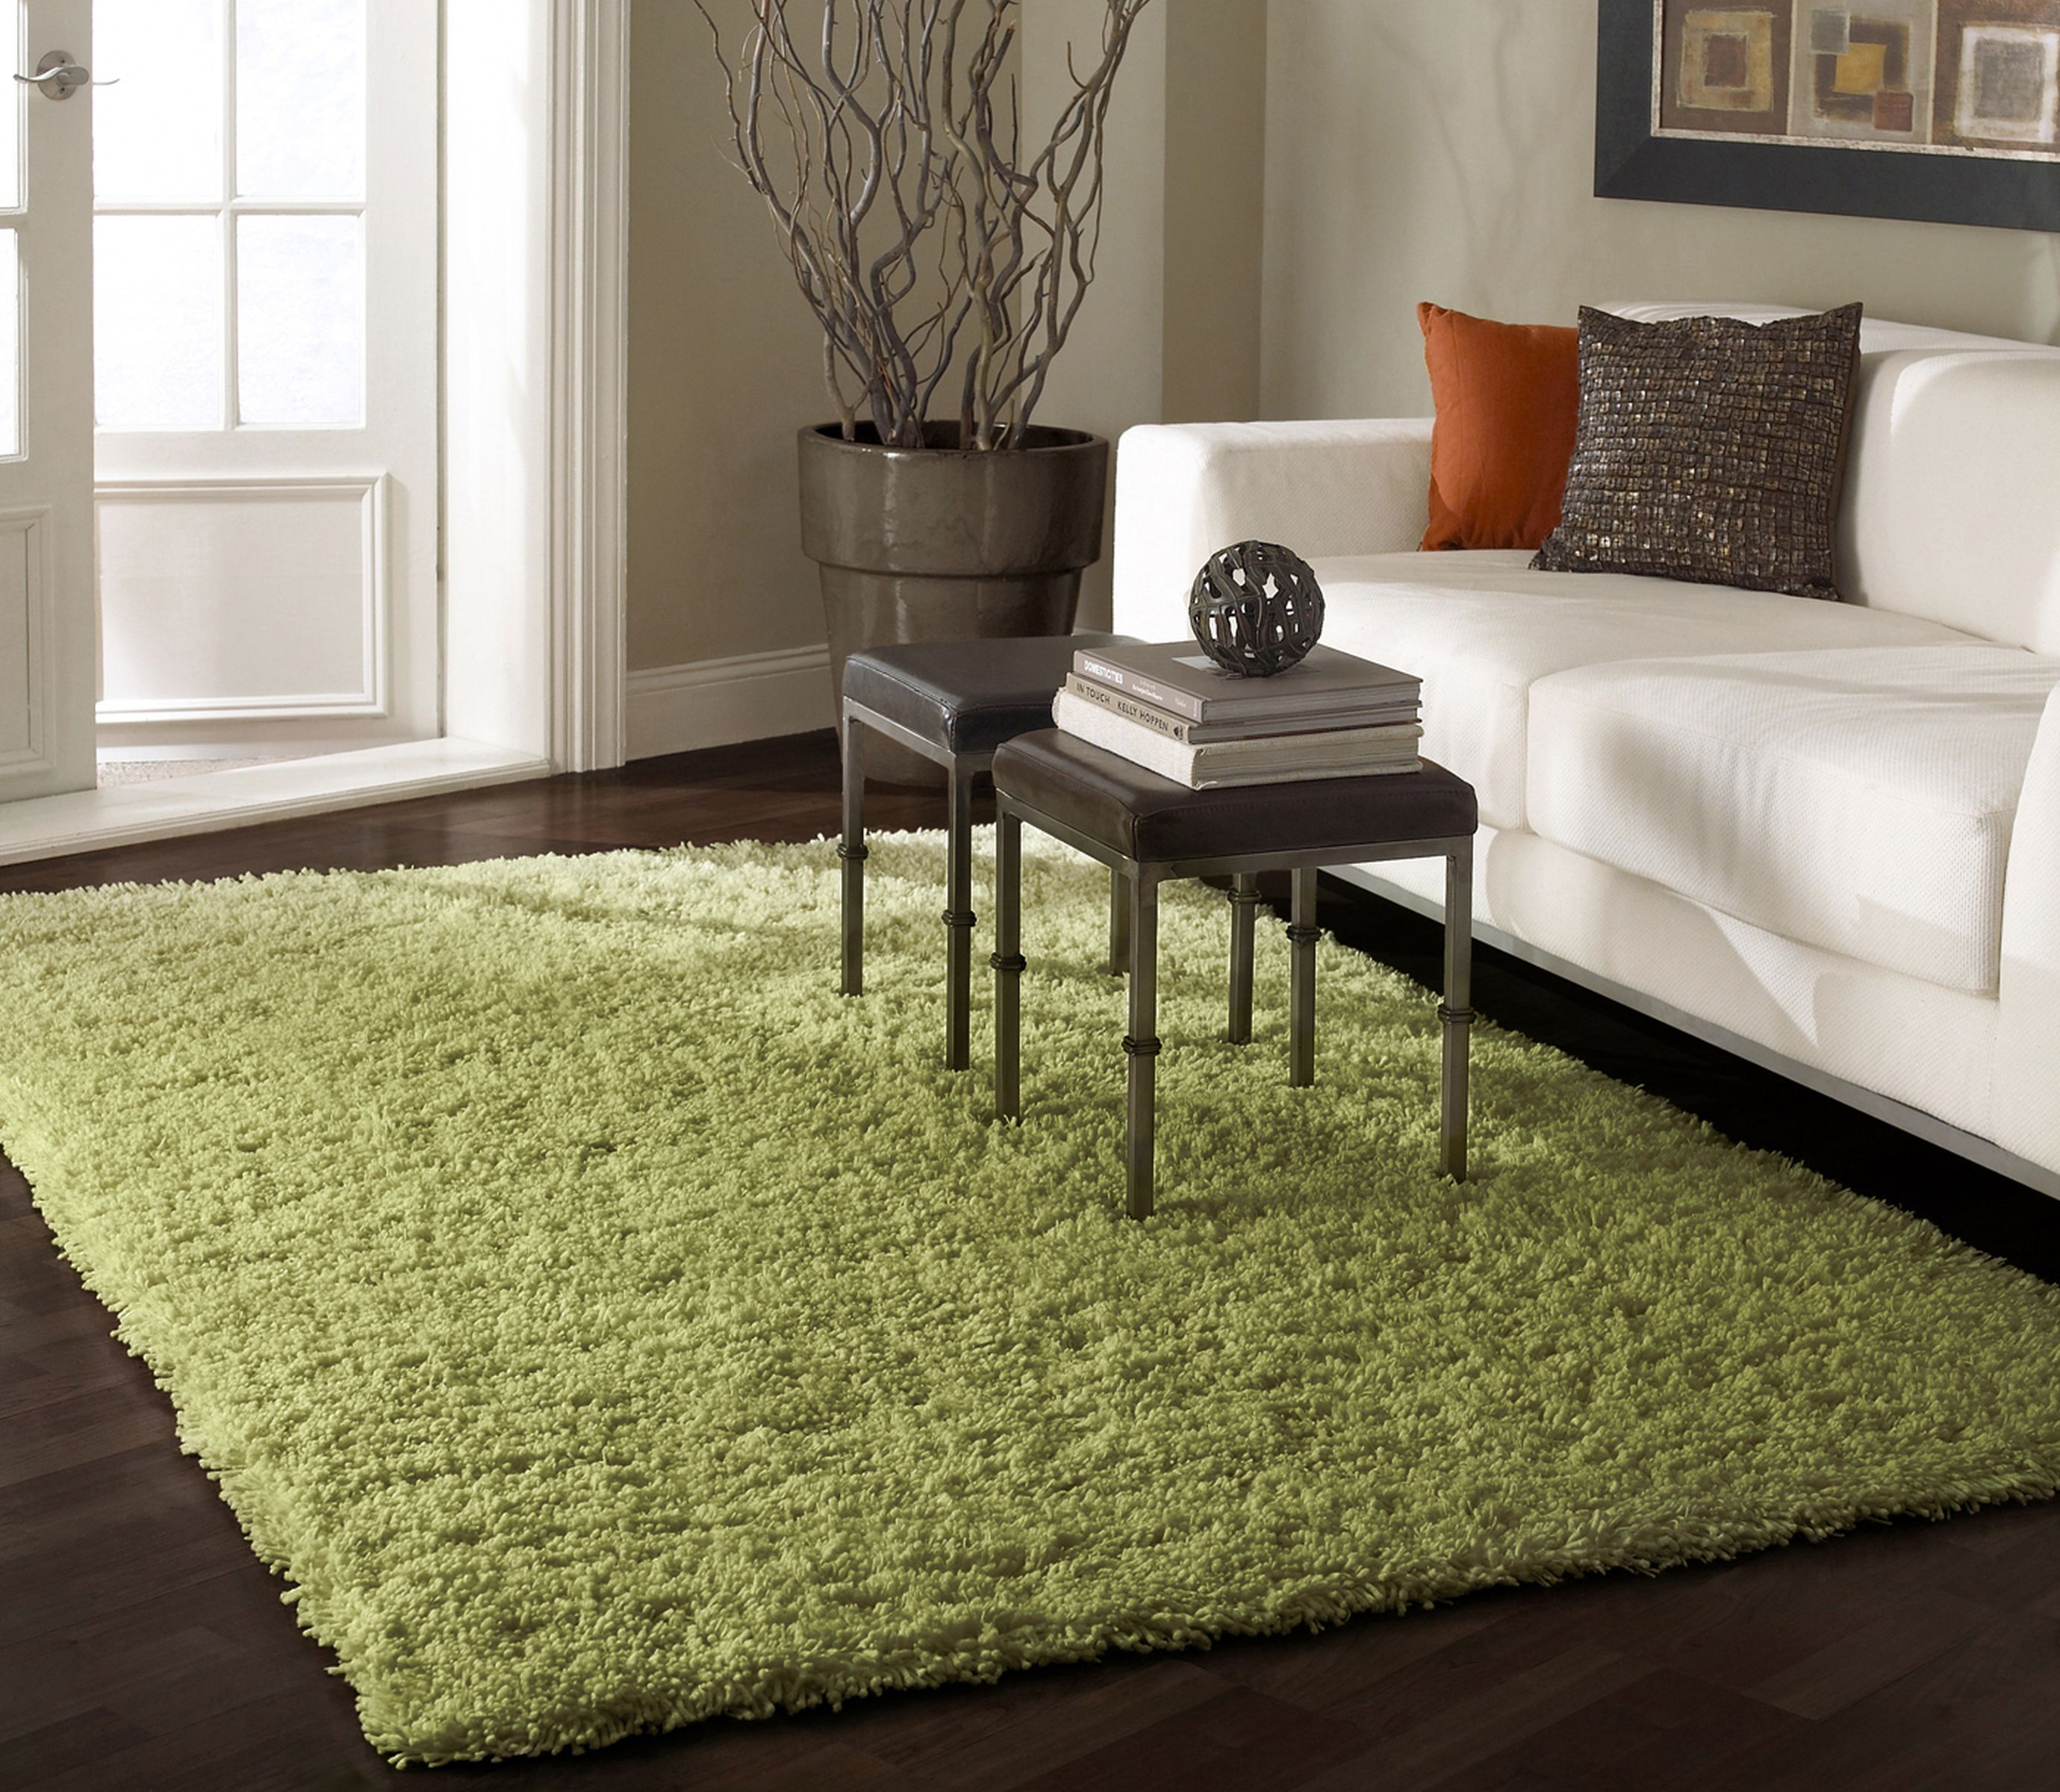 Decor Lime Green Area Rug 8x10